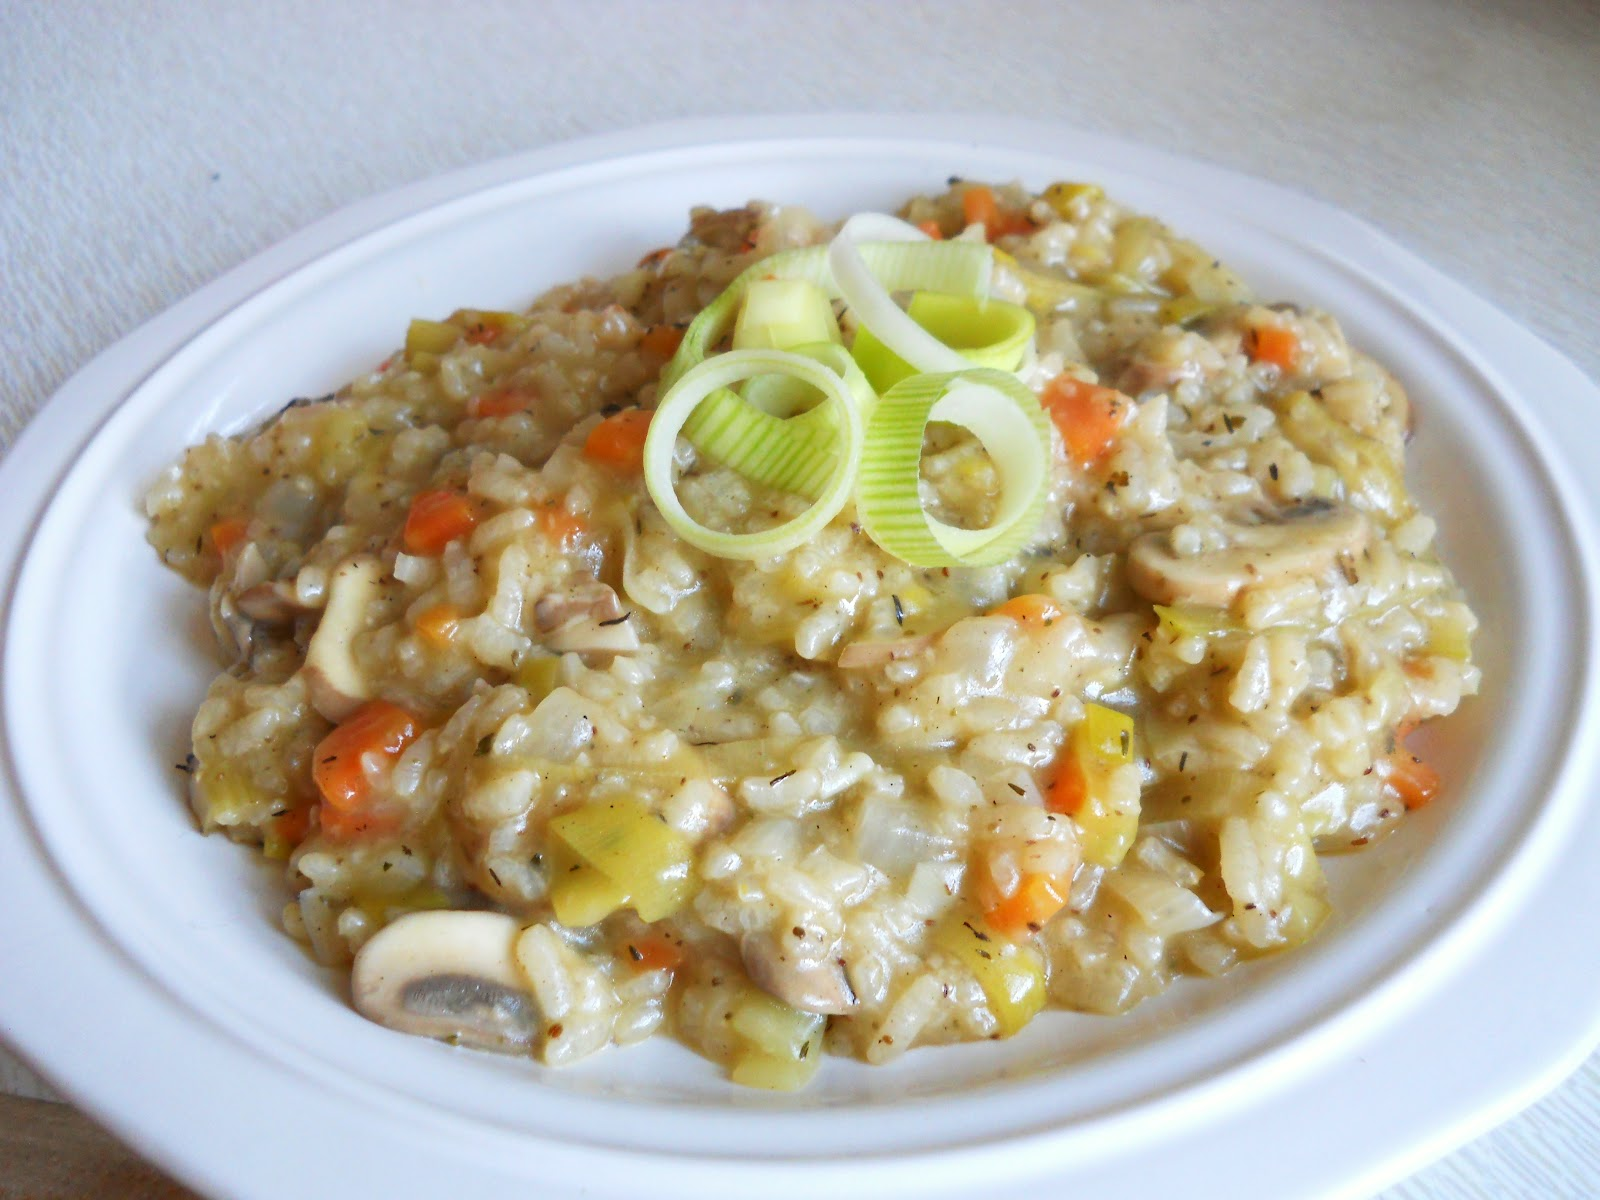 ... Home Chef: Heaven is a Spring Risotto with Leek, Mushroom and Carrot